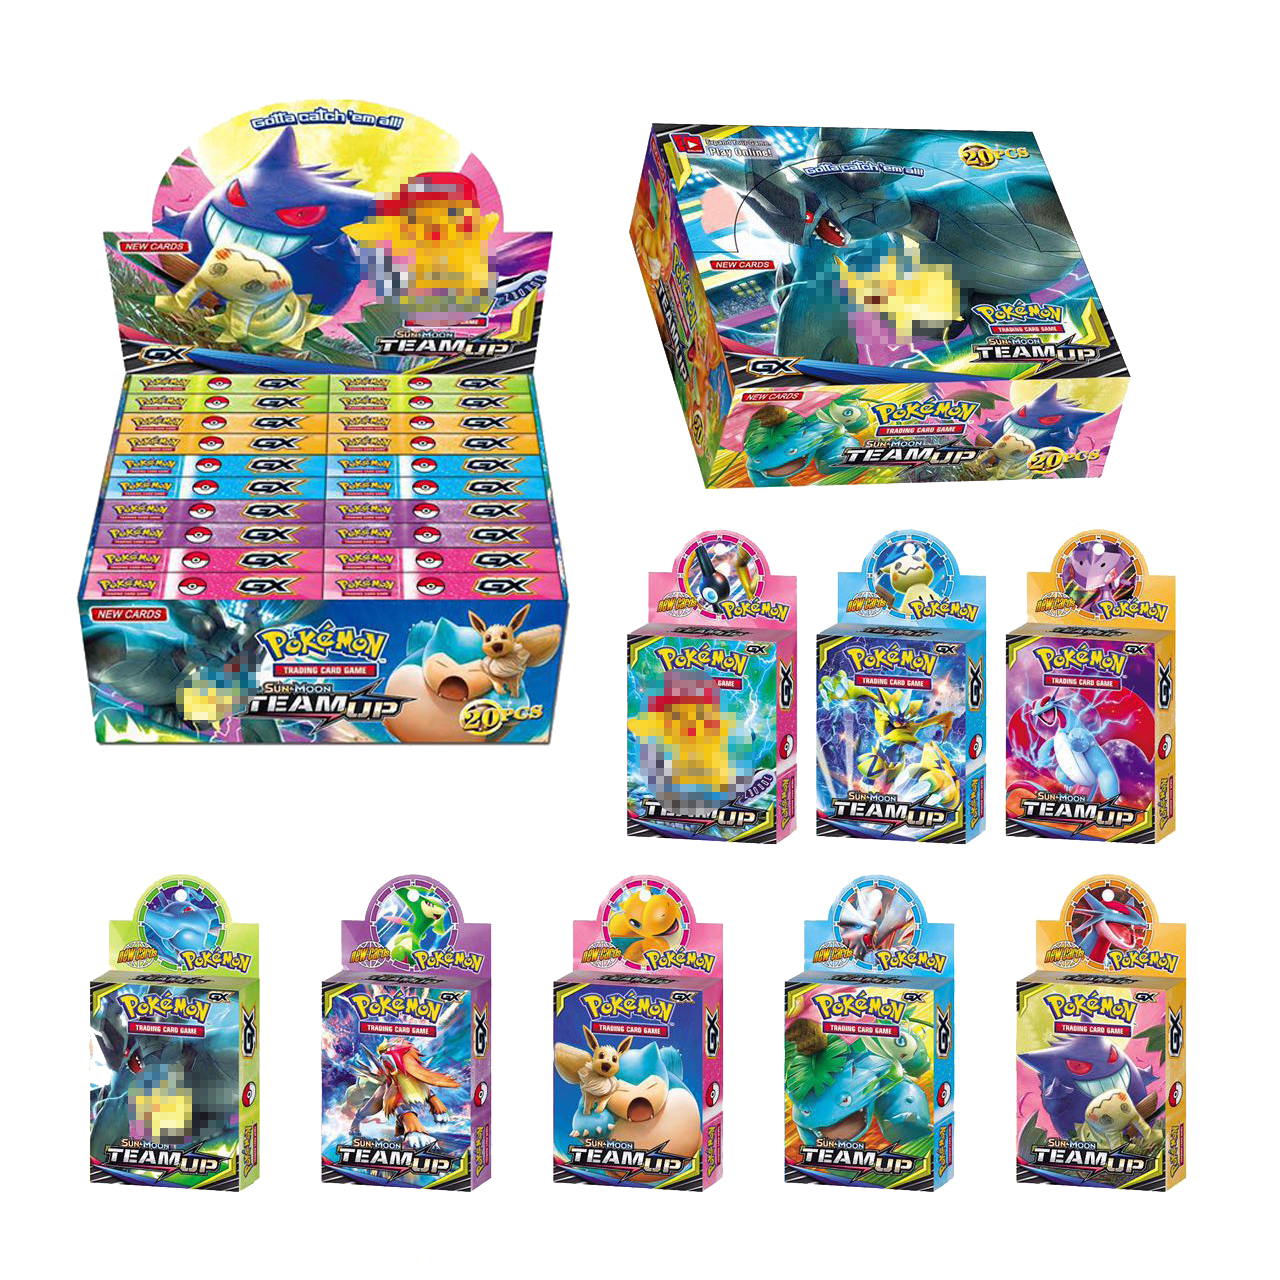 Takara Tomy PTCG Pokemon Cards 33PCS GX EX MEGA  Flash Card Sword Shield Sun Moon Card Collectible Gift Children Toy